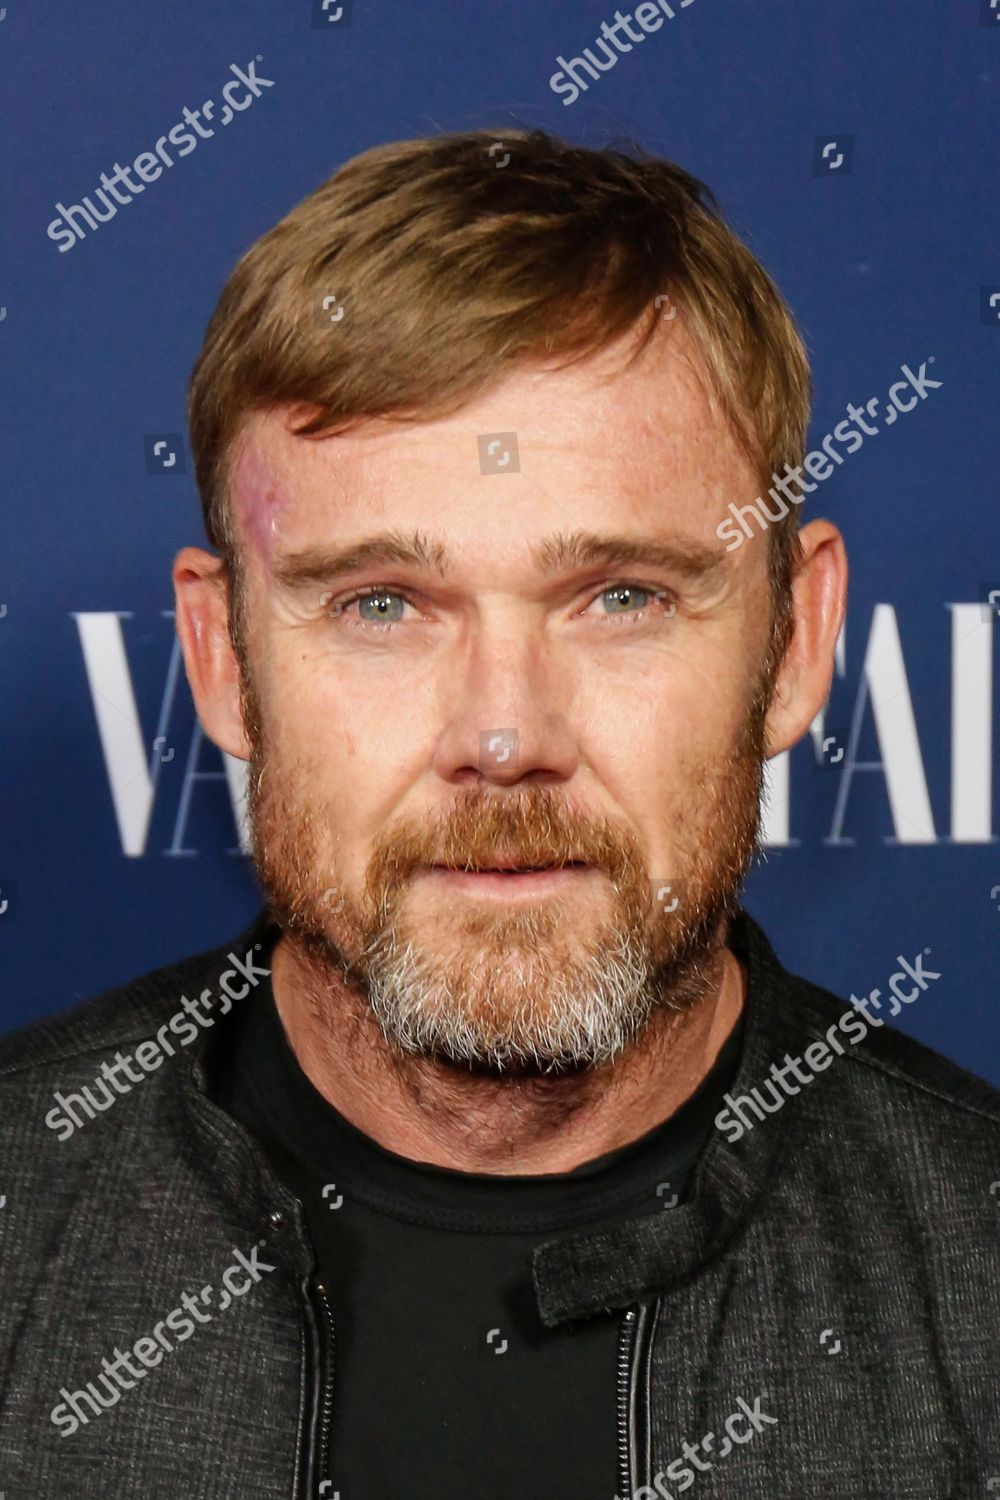 af8427483b03 Ricky Schroder arrives NBC Vanity Fair Toast Editorial Stock Photo ...